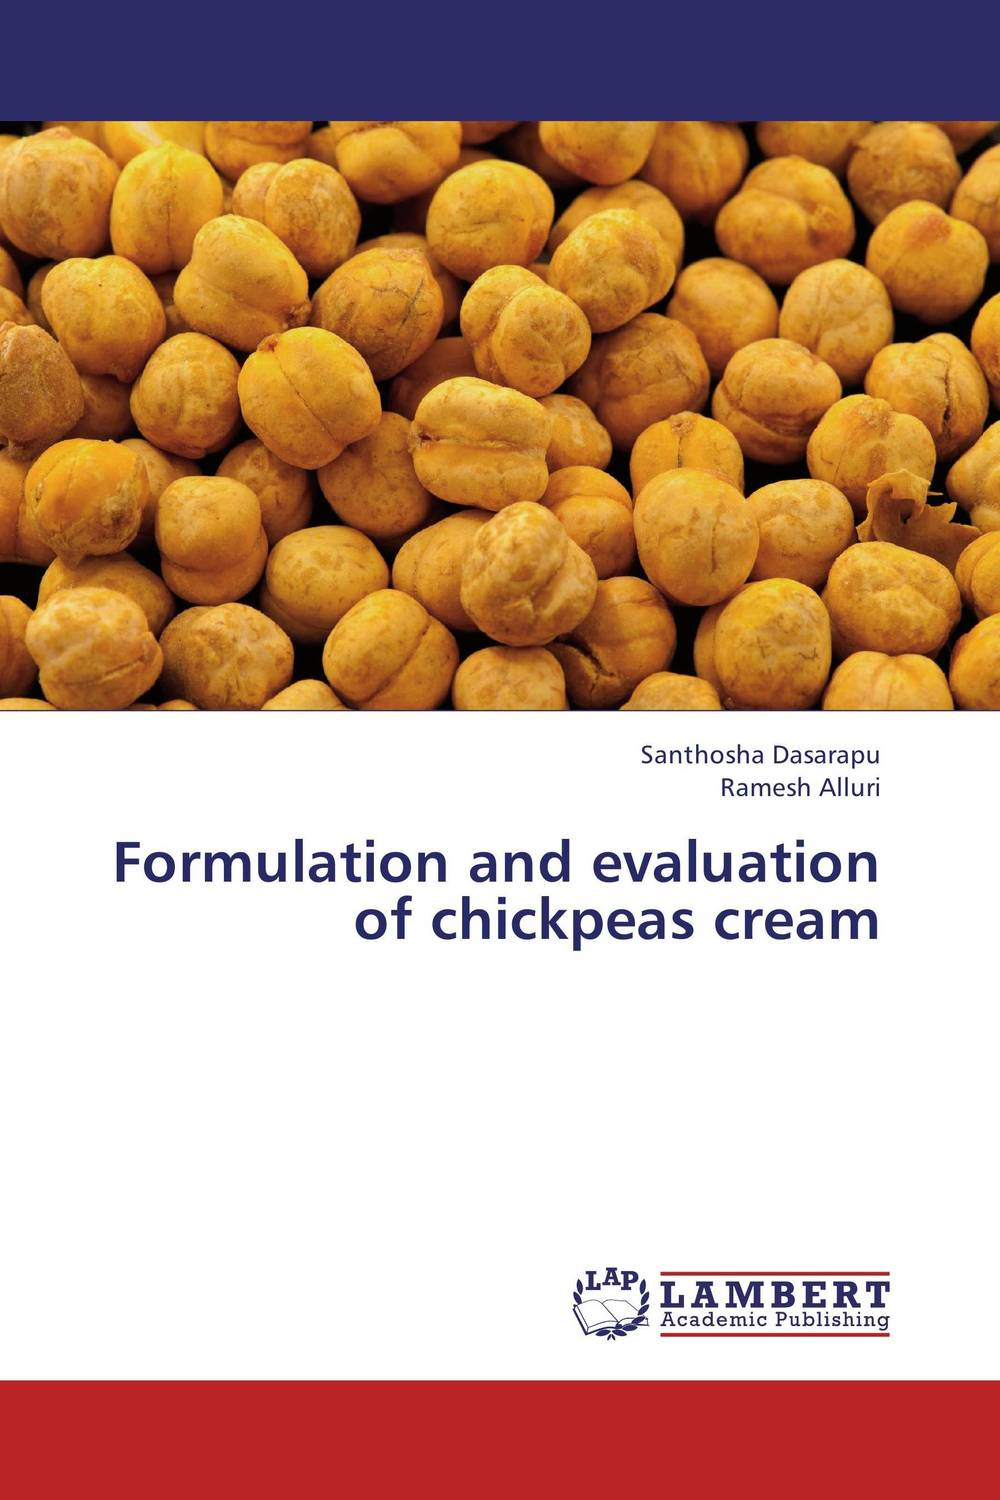 Formulation and evaluation of chickpeas cream the role of evaluation as a mechanism for advancing principal practice